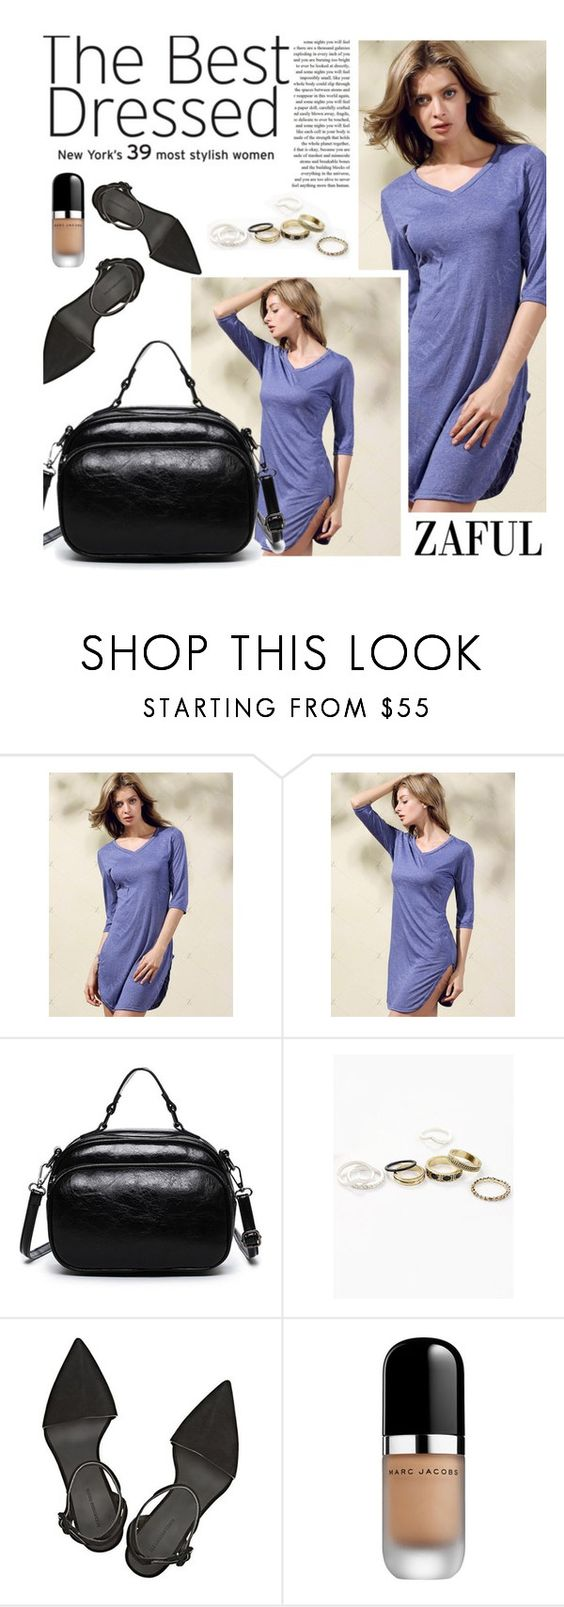 """Zaful 42/4"" by merima-kopic ❤ liked on Polyvore featuring Privé, Alexander Wang, Marc Jacobs and zaful"